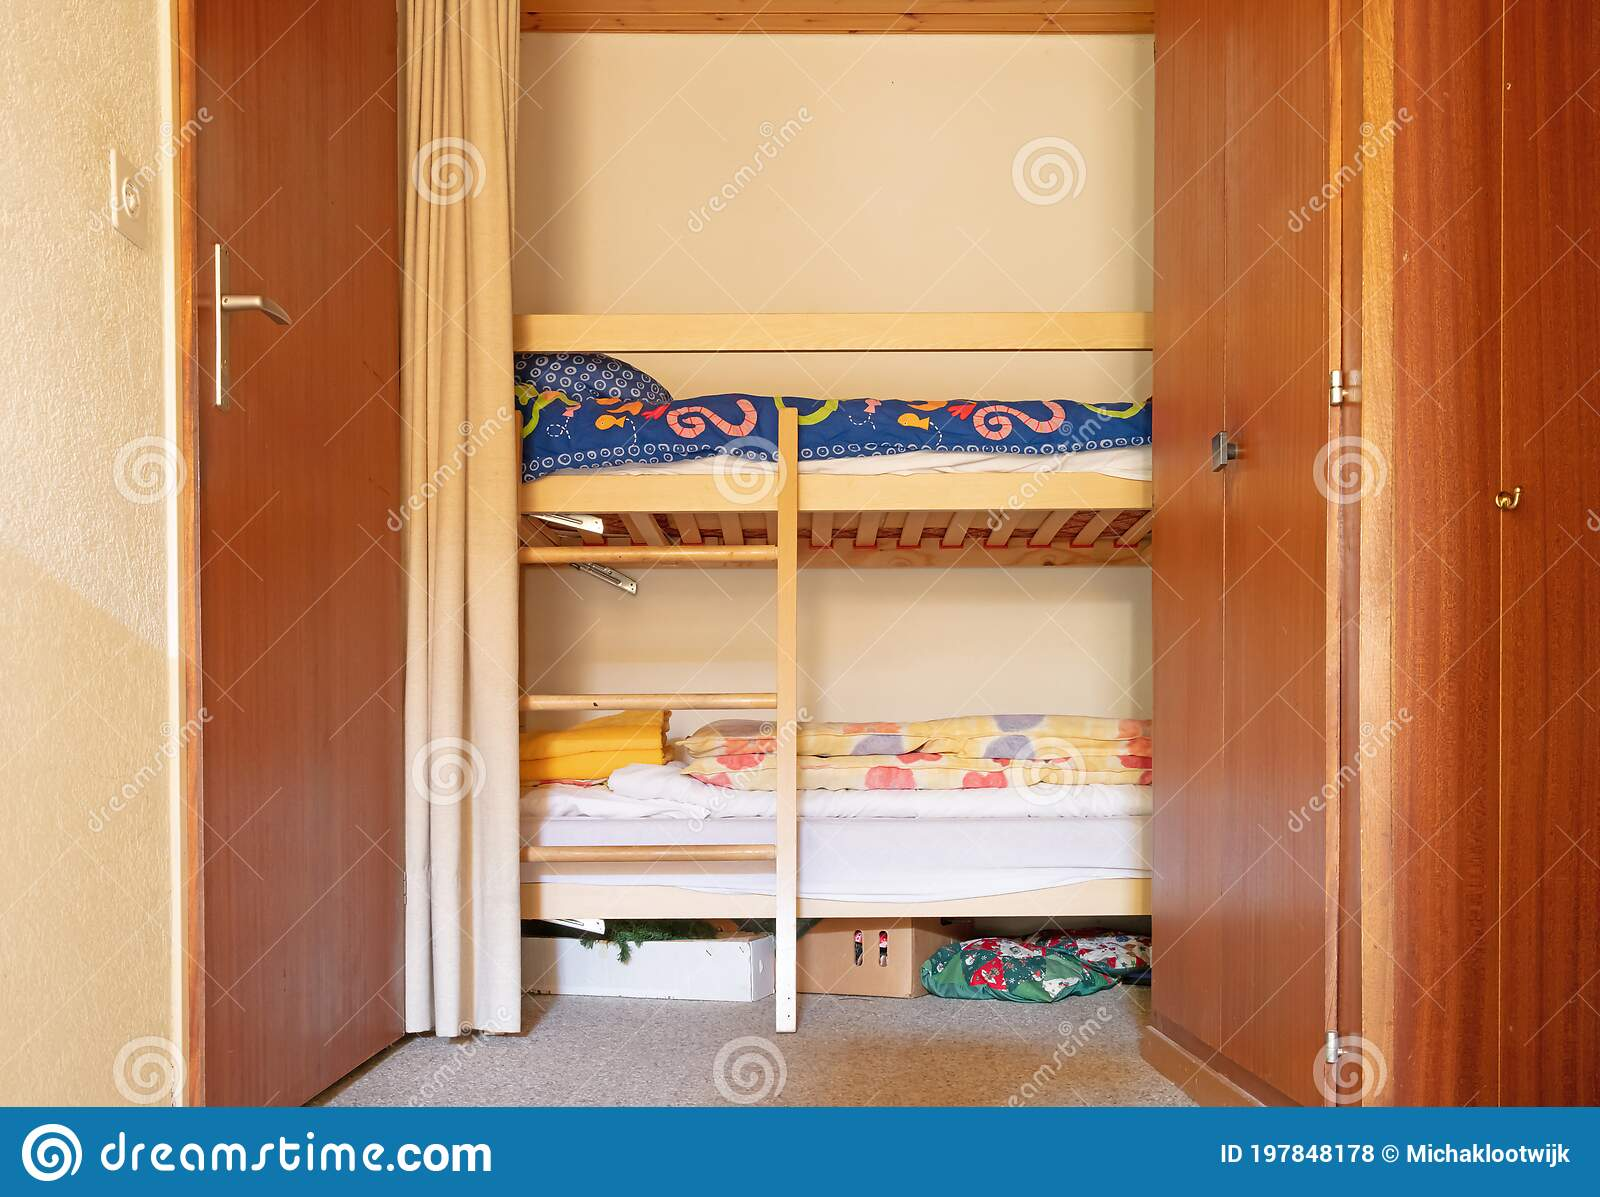 Bunk Bed In The Hallway Of An Old Apartment Stock Photo Image Of Children Wooden 197848178